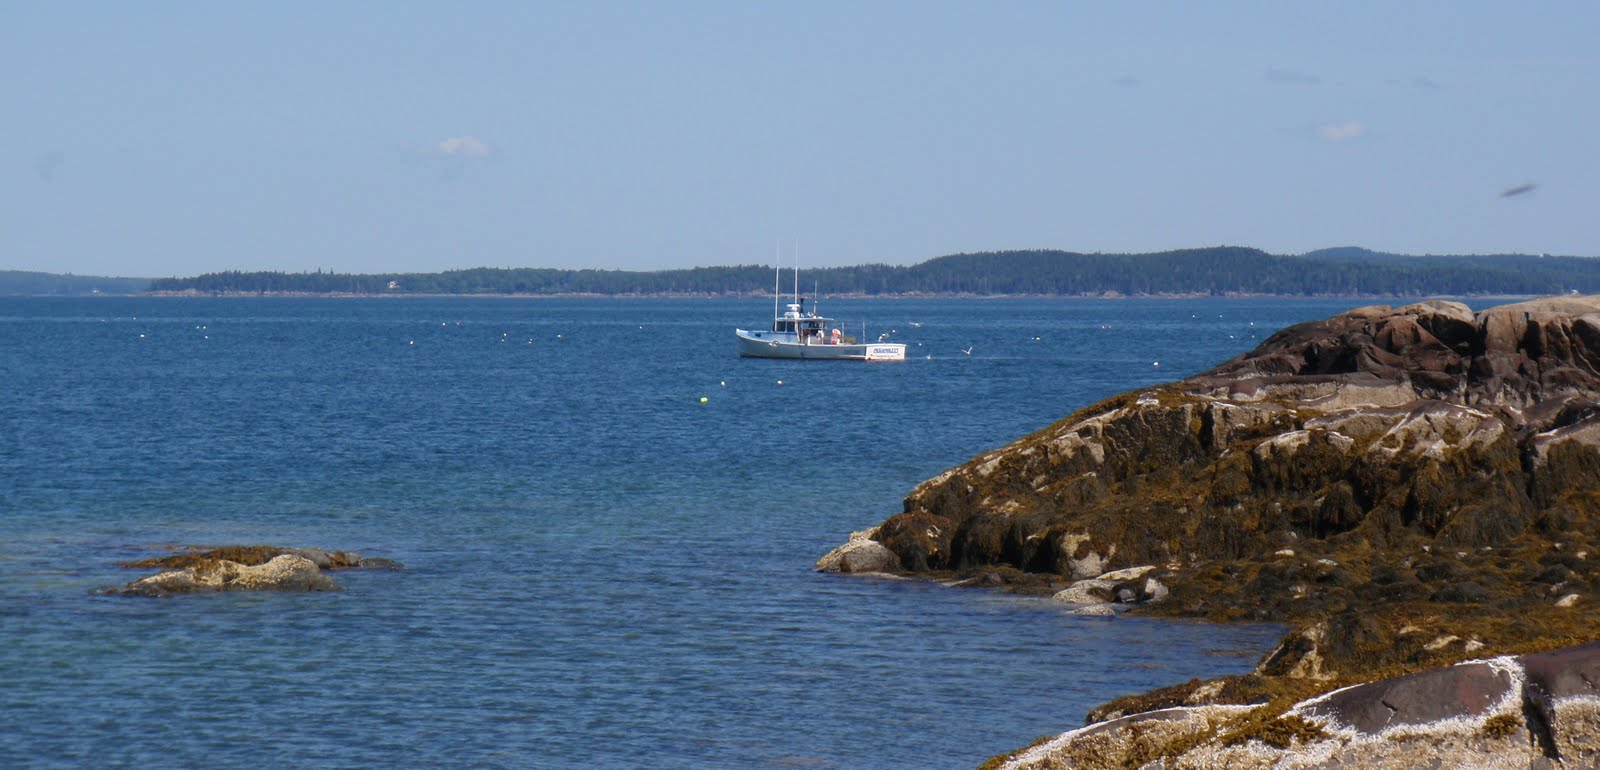 PenobscotPaddles: Bar Harbor to the Hop (Maine)